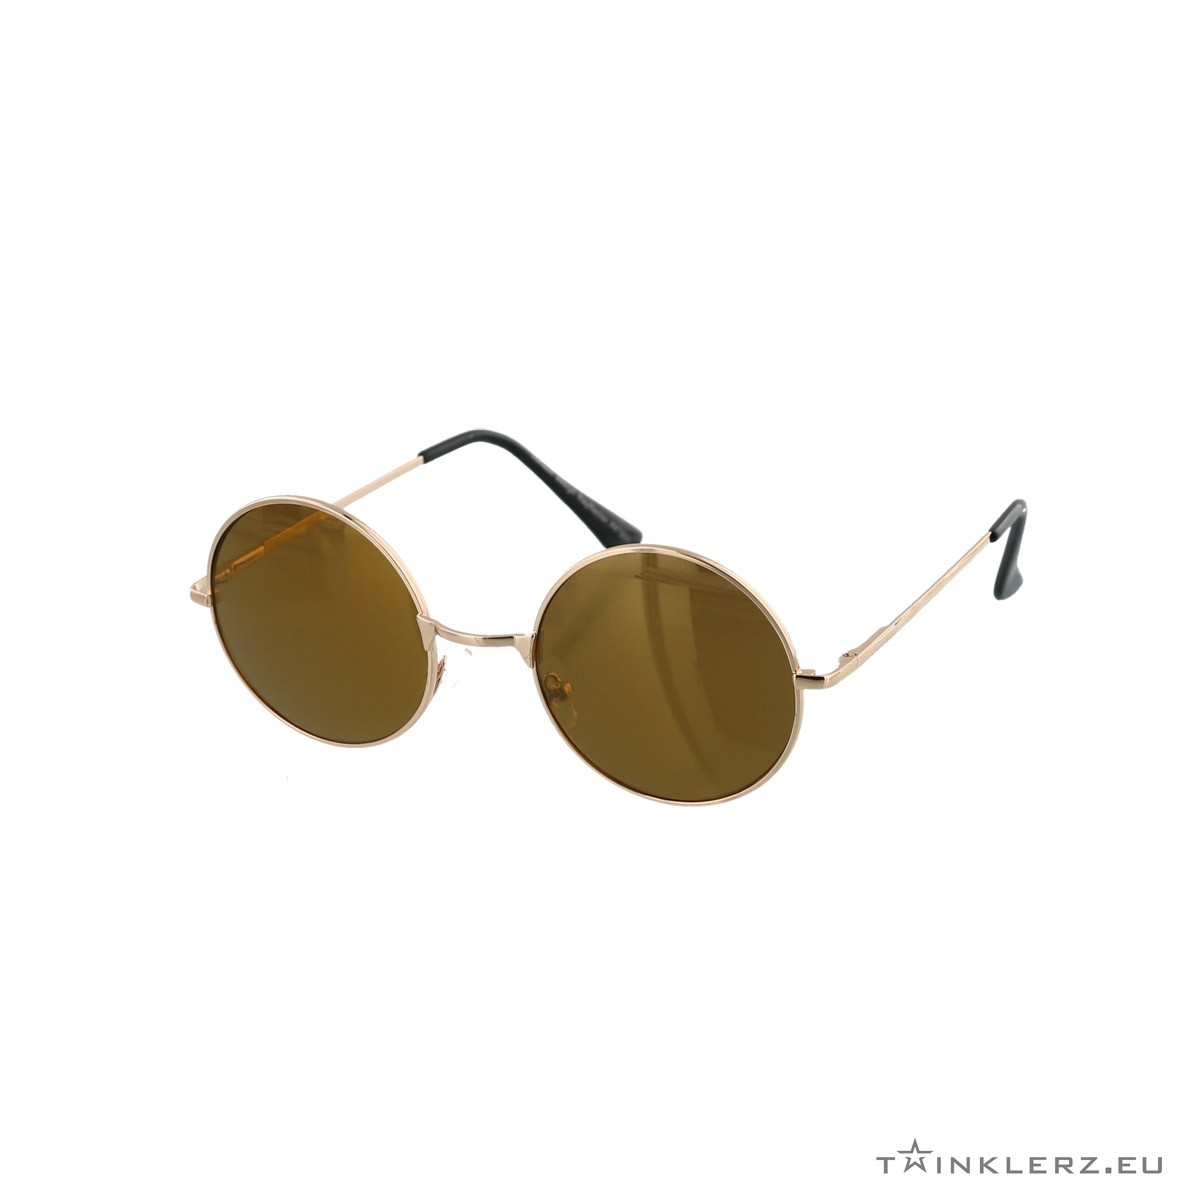 Round golden sunglasses brown lenses